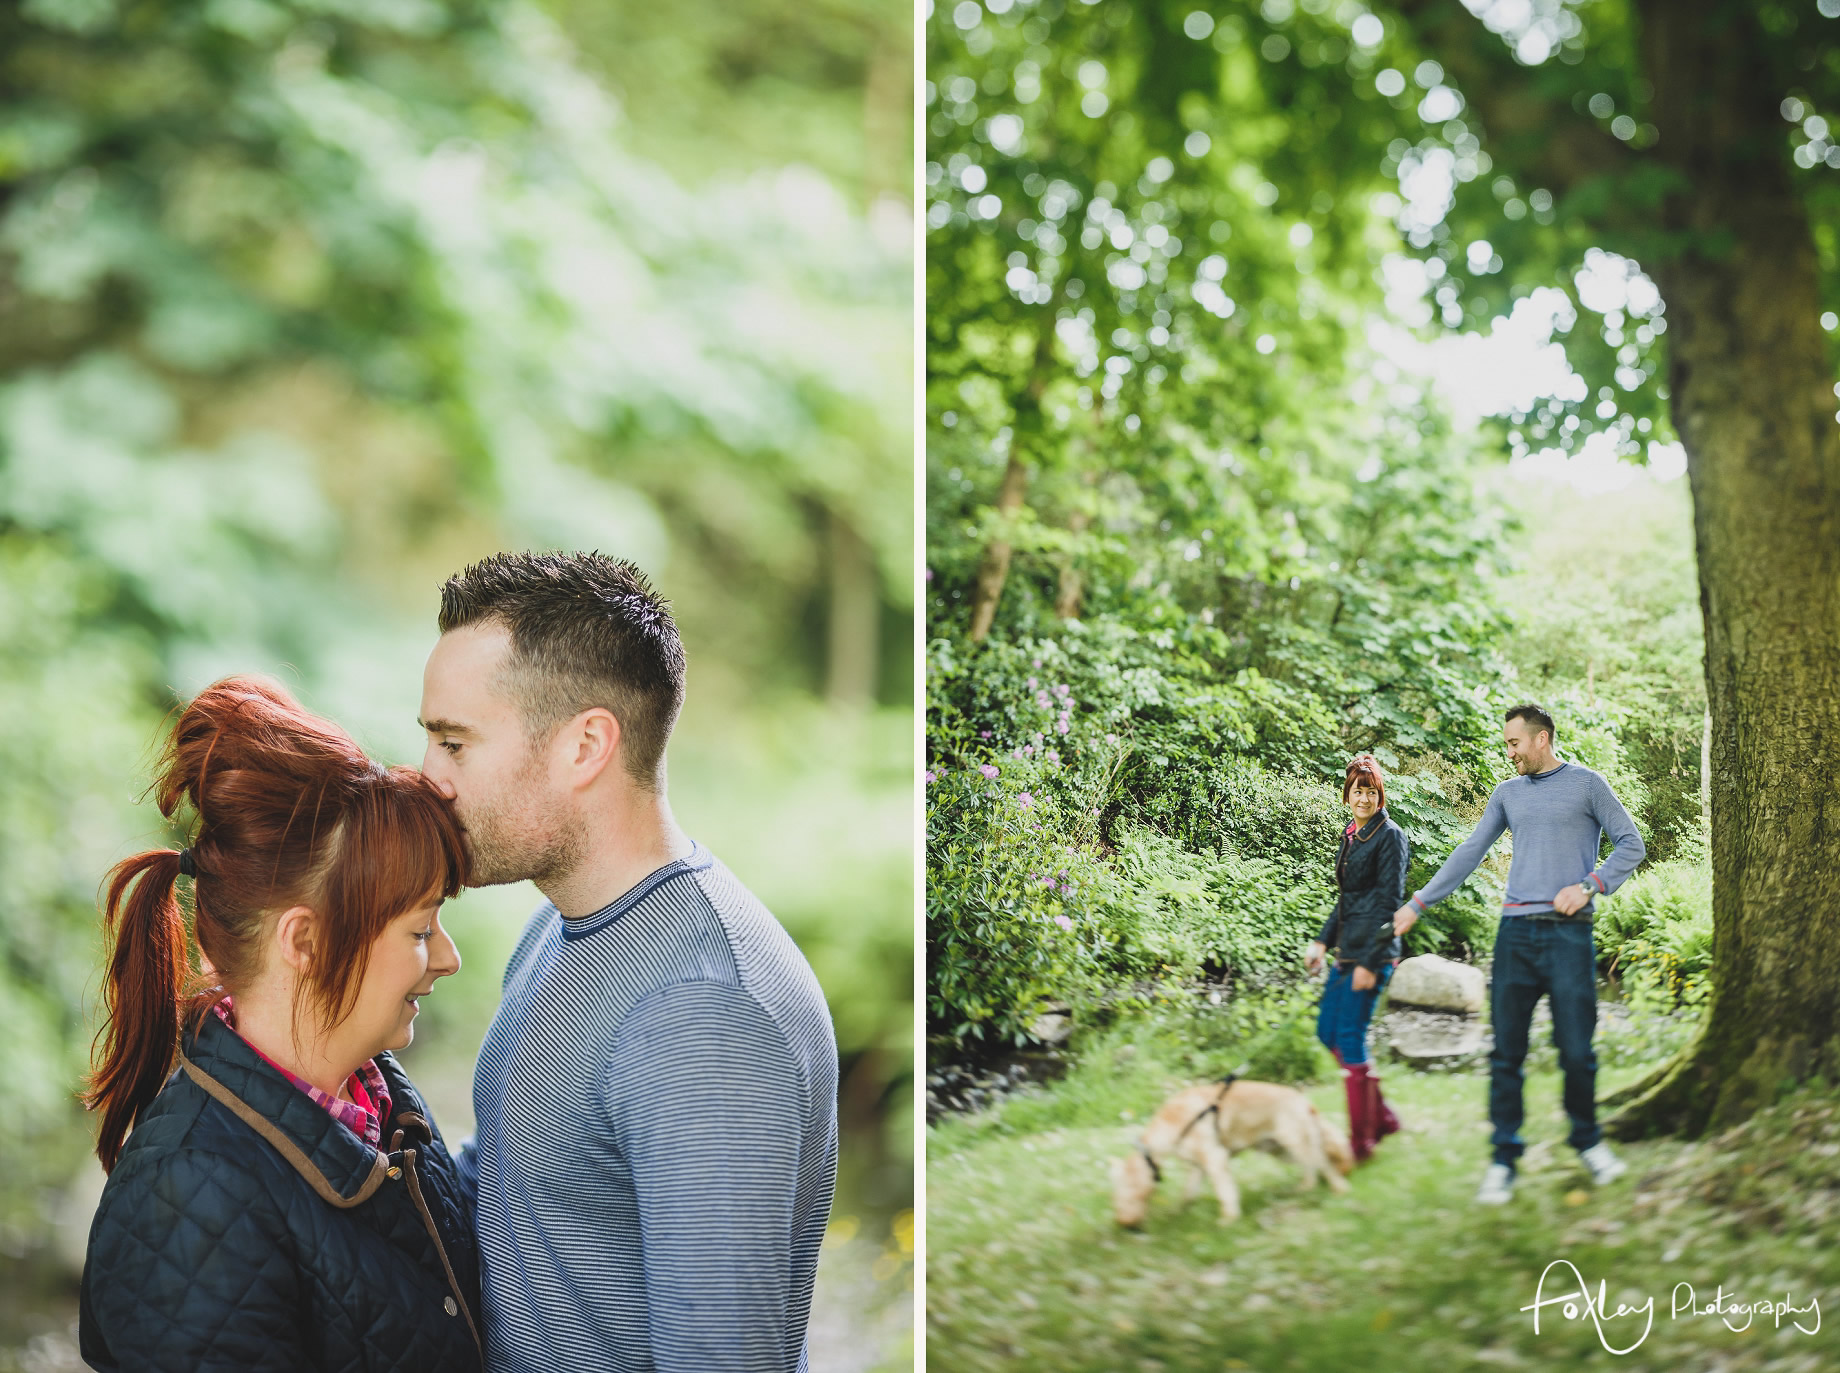 Mary-and-Adam-Pre-Wedding-Shoot-at-Corporation-Park-014